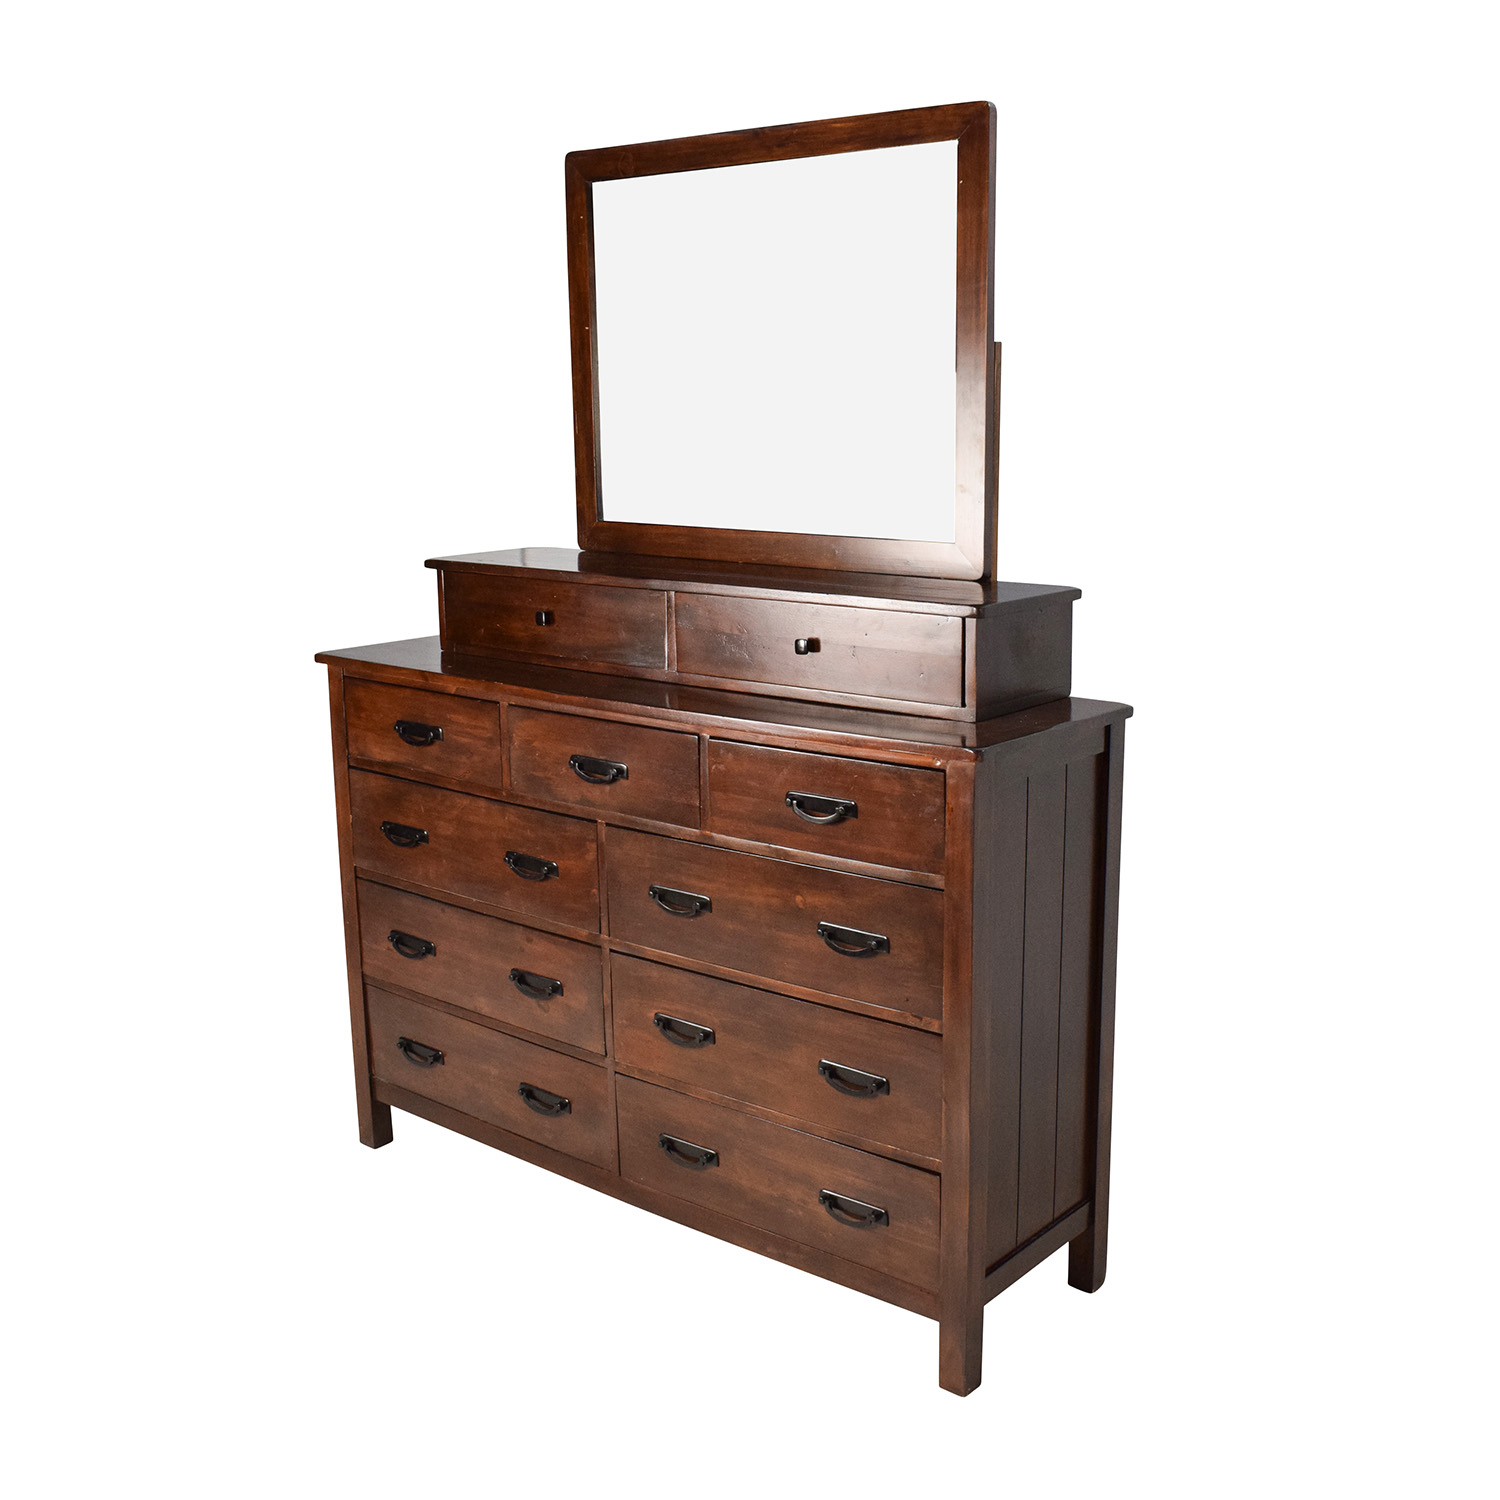 56 Off Wooden 11 Drawer Dresser With Vanity Mirror